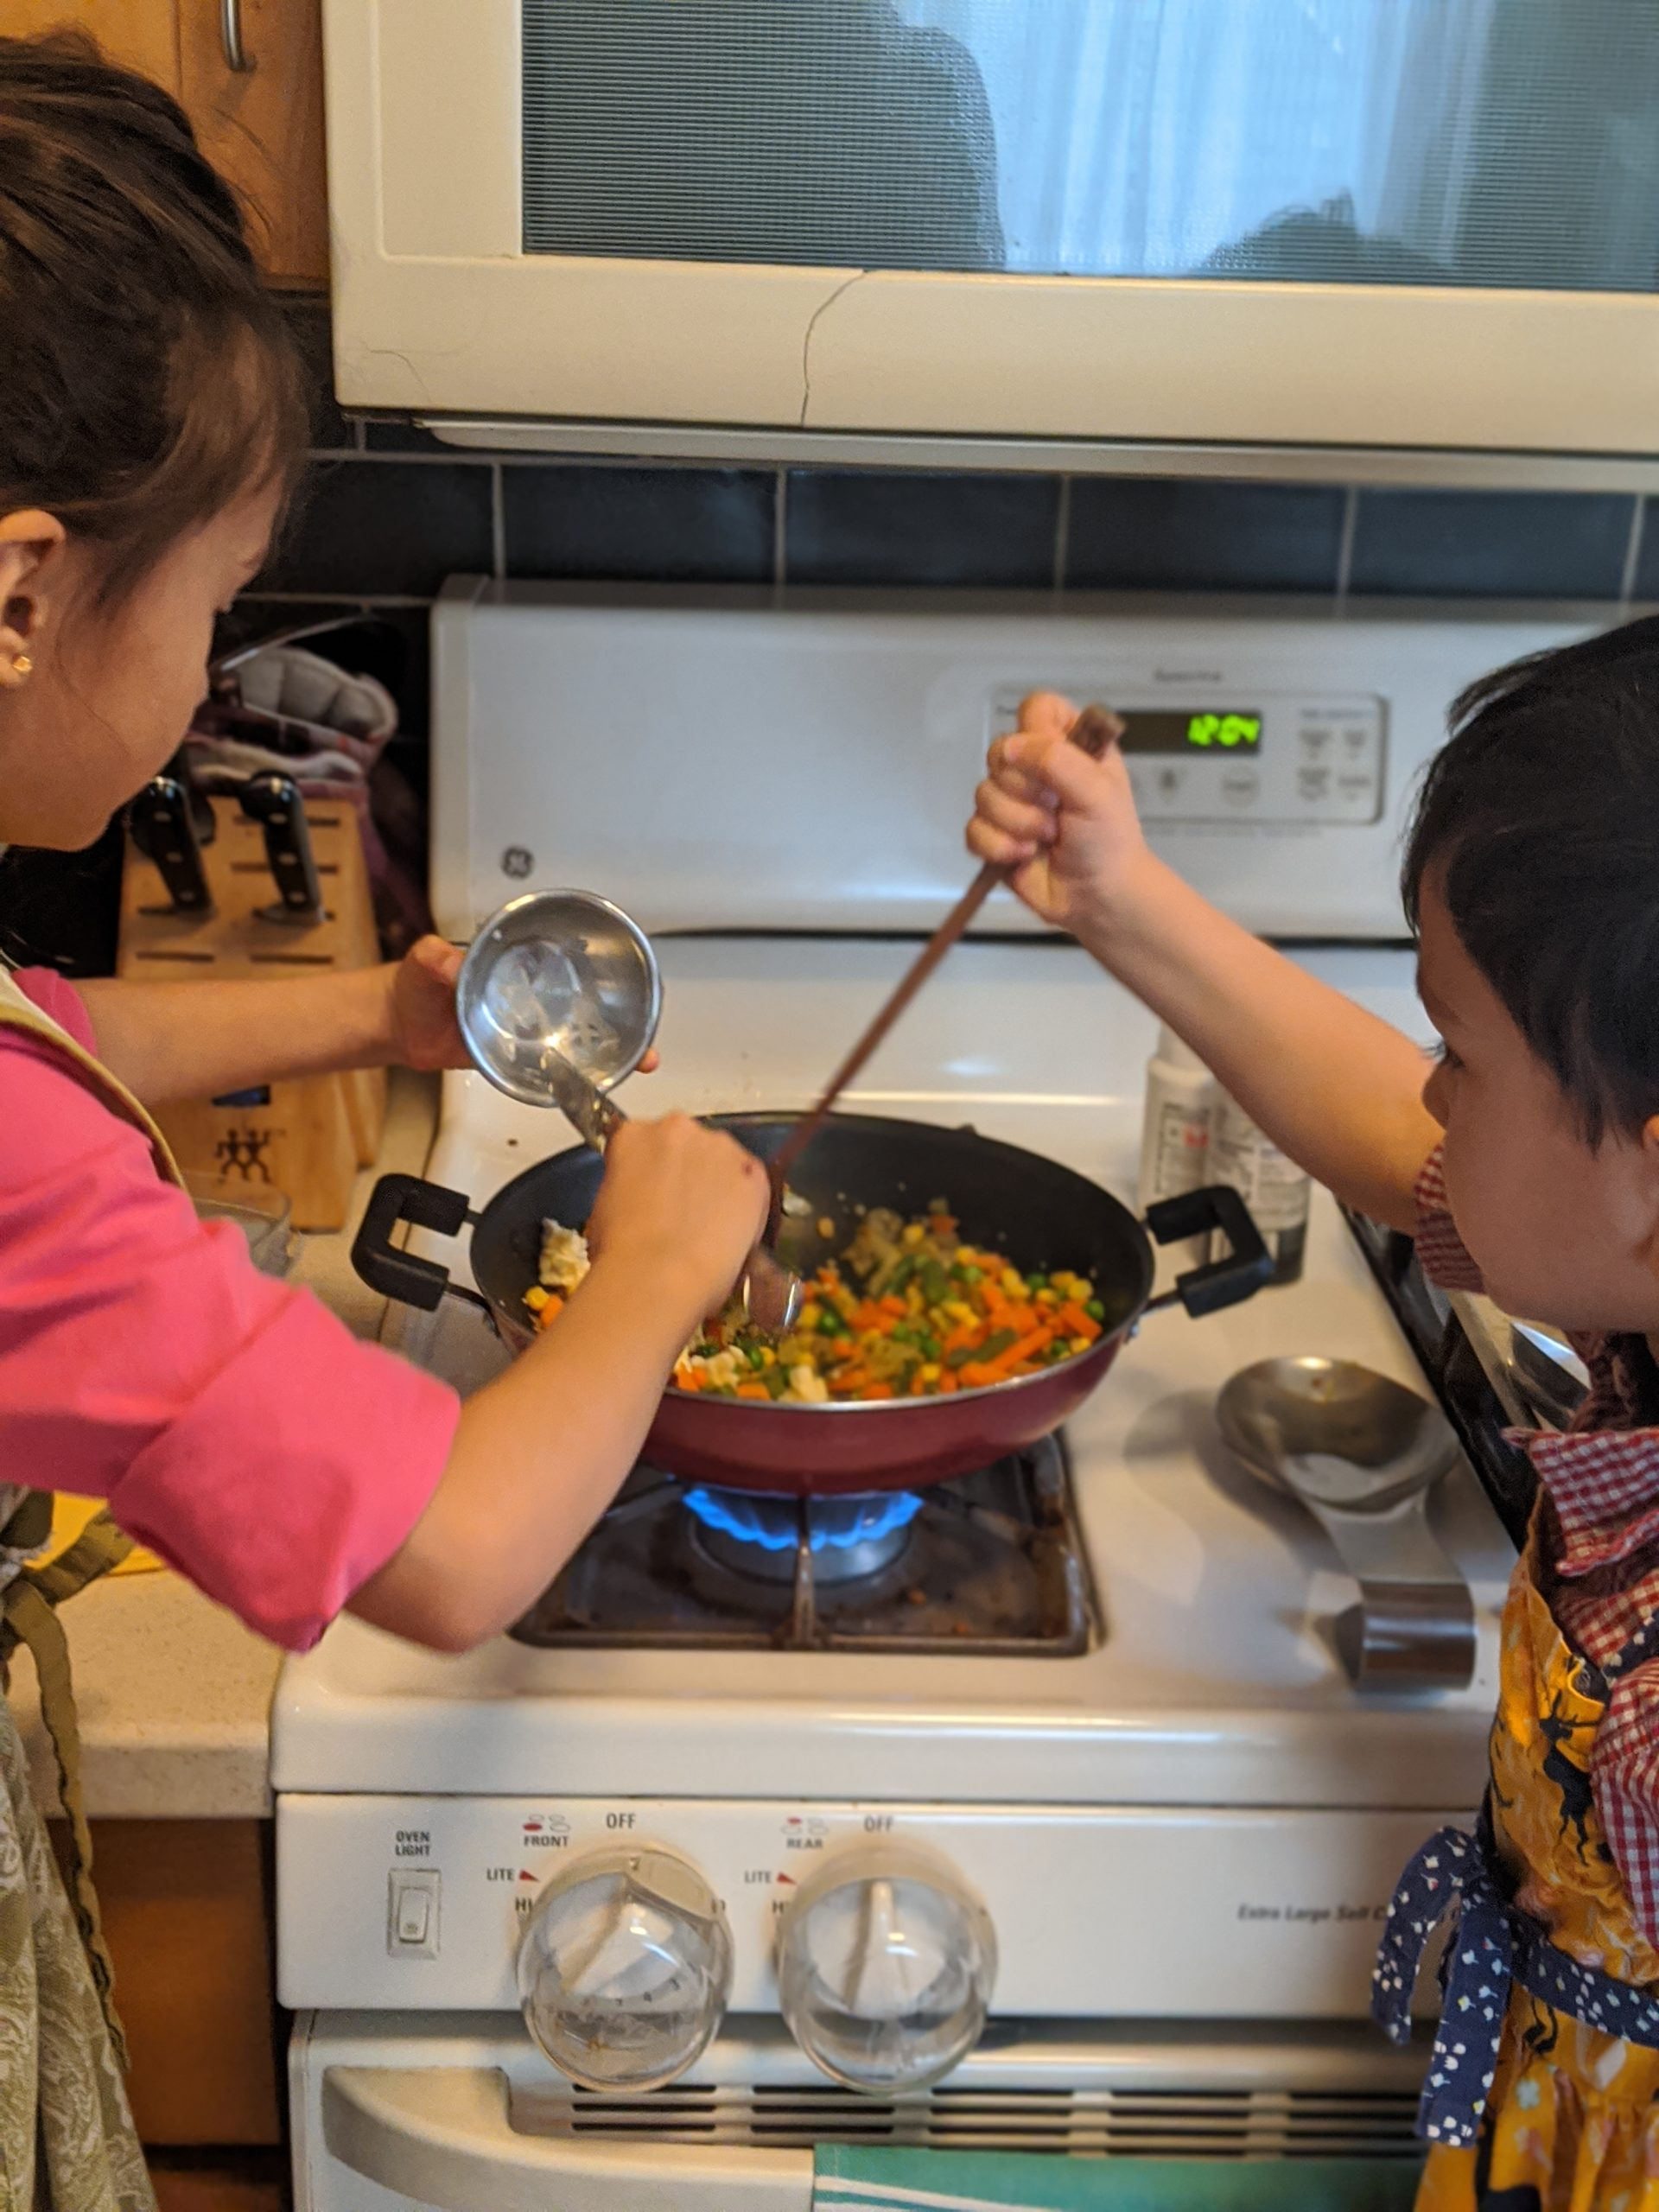 Children cooking on the stove